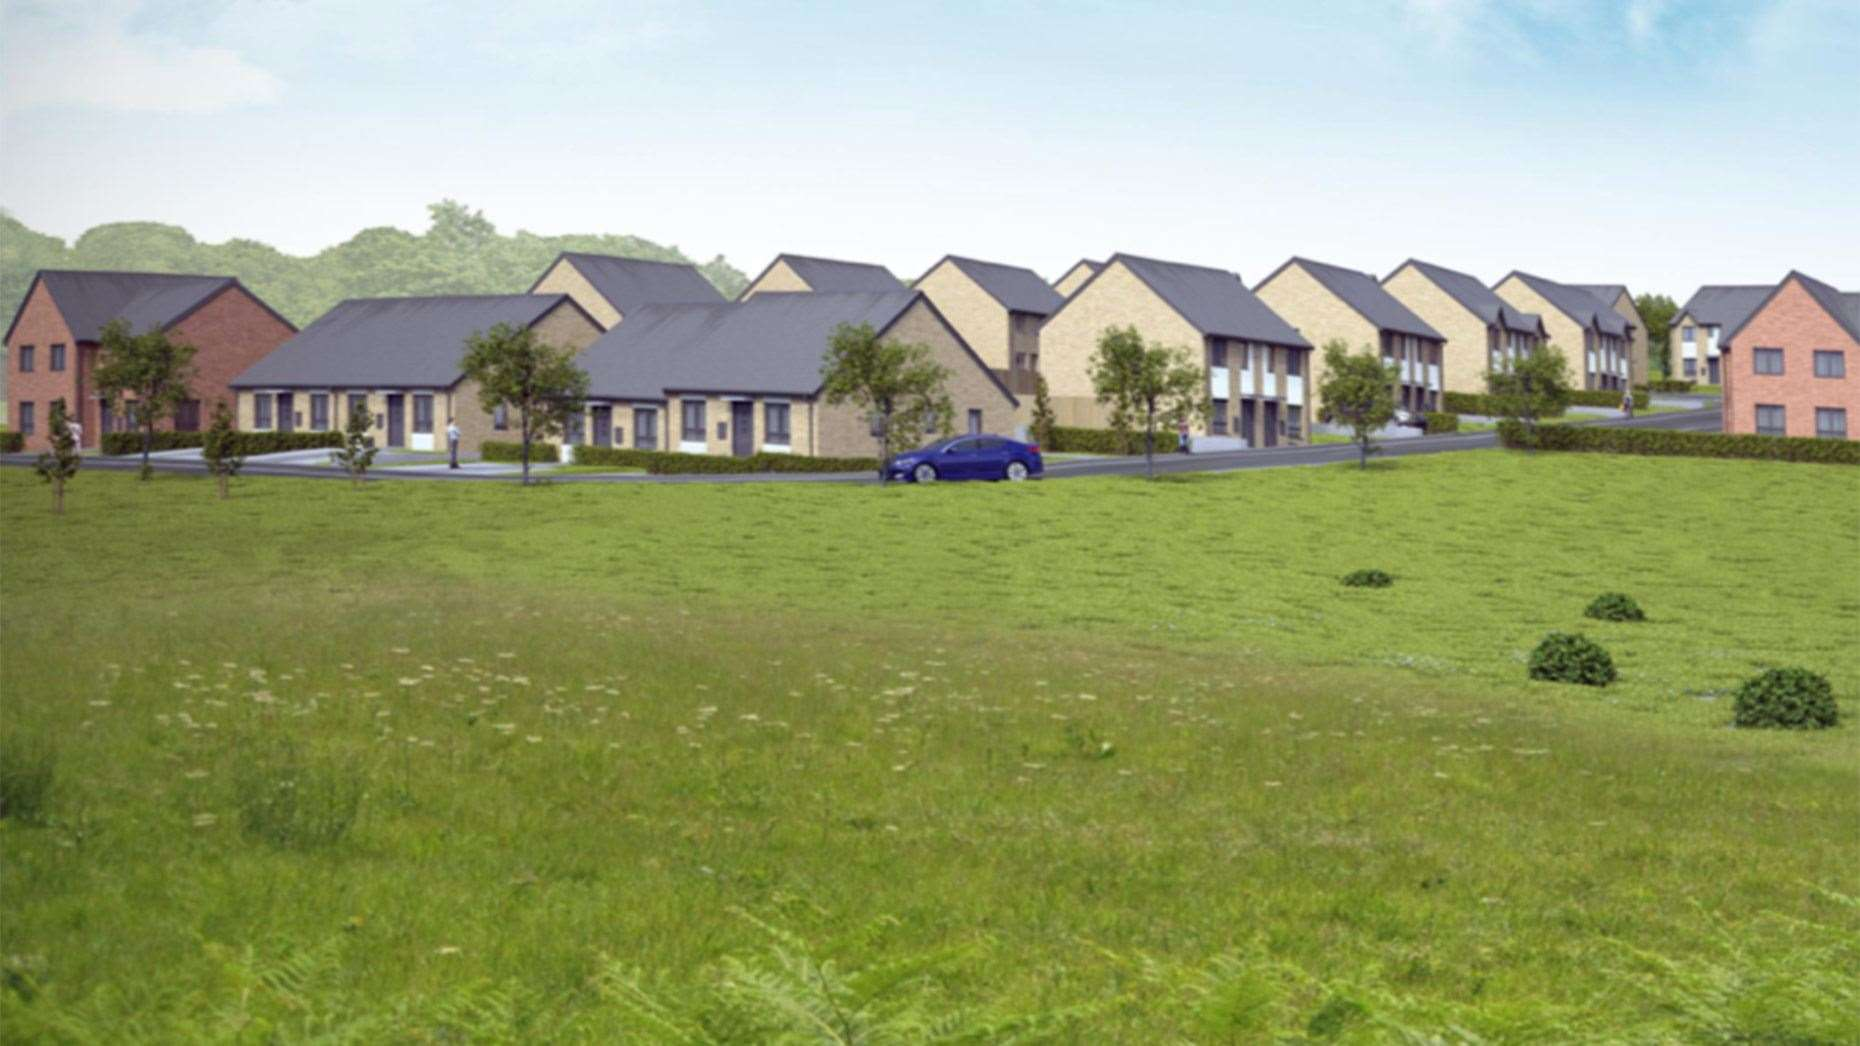 Design of the proposed development in Great Gonerby. (8595554)